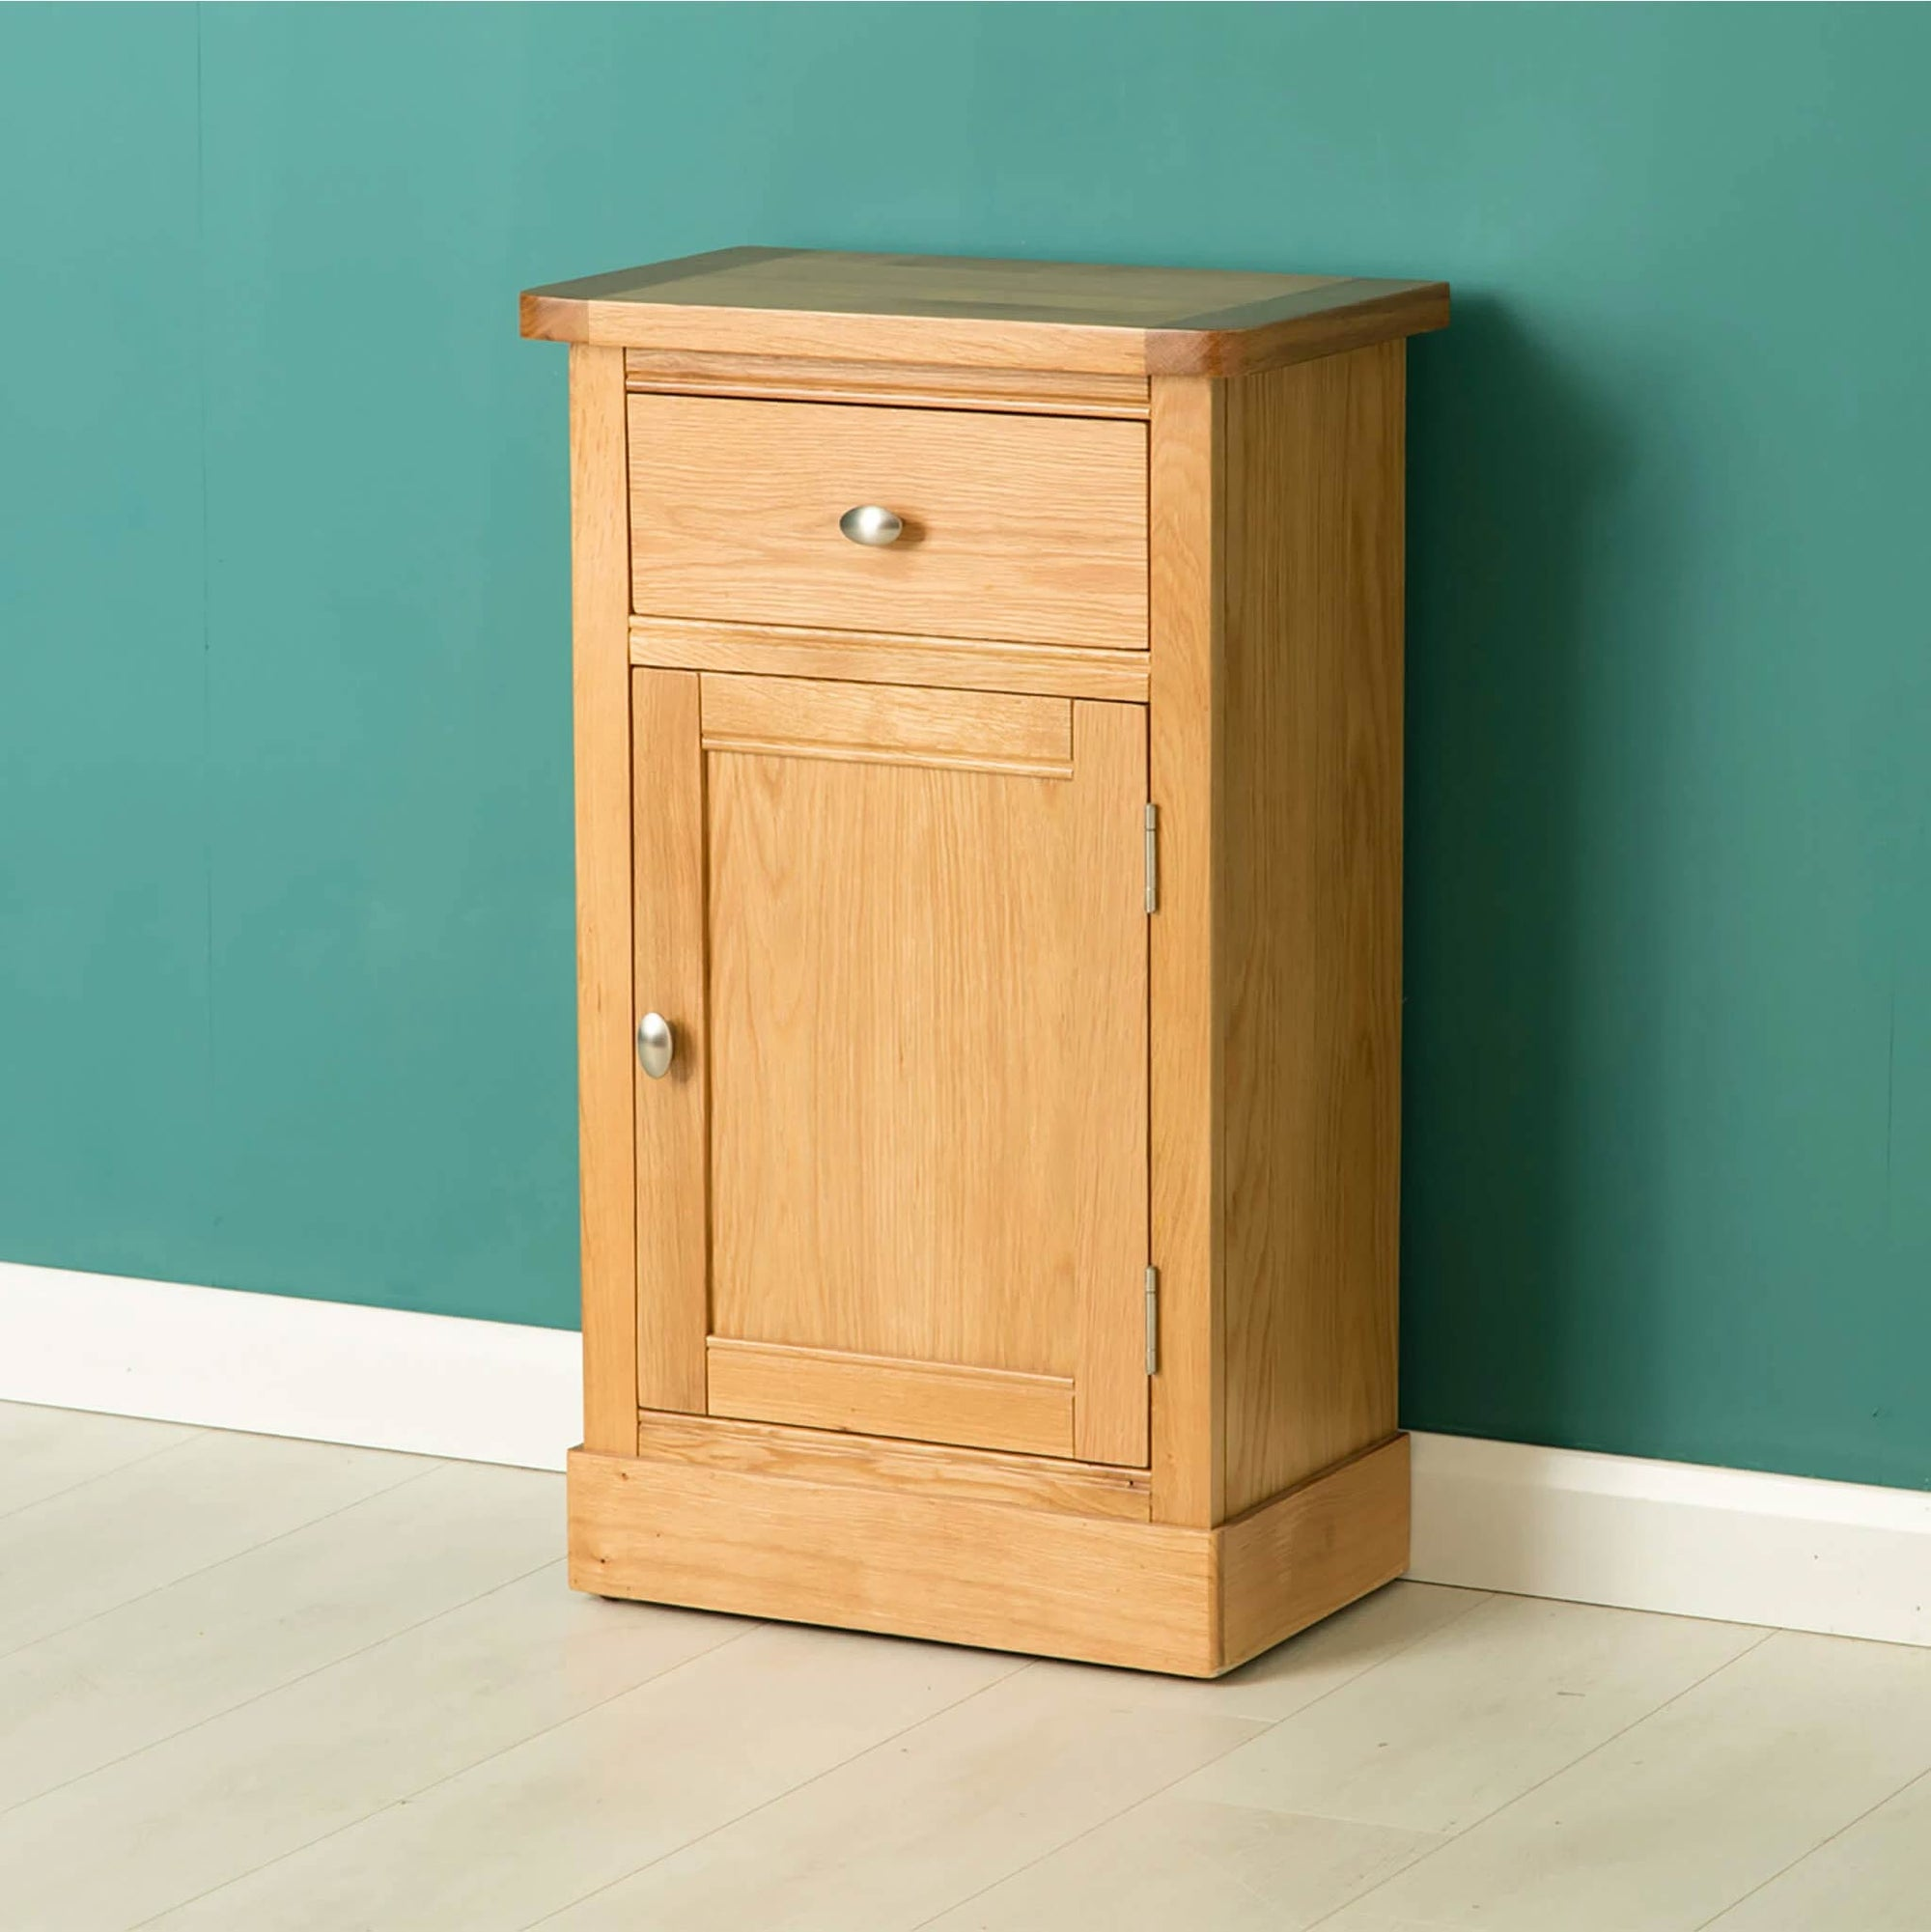 Hampshire Oak Telephone Table cupboard Unit by Roseland Furniture